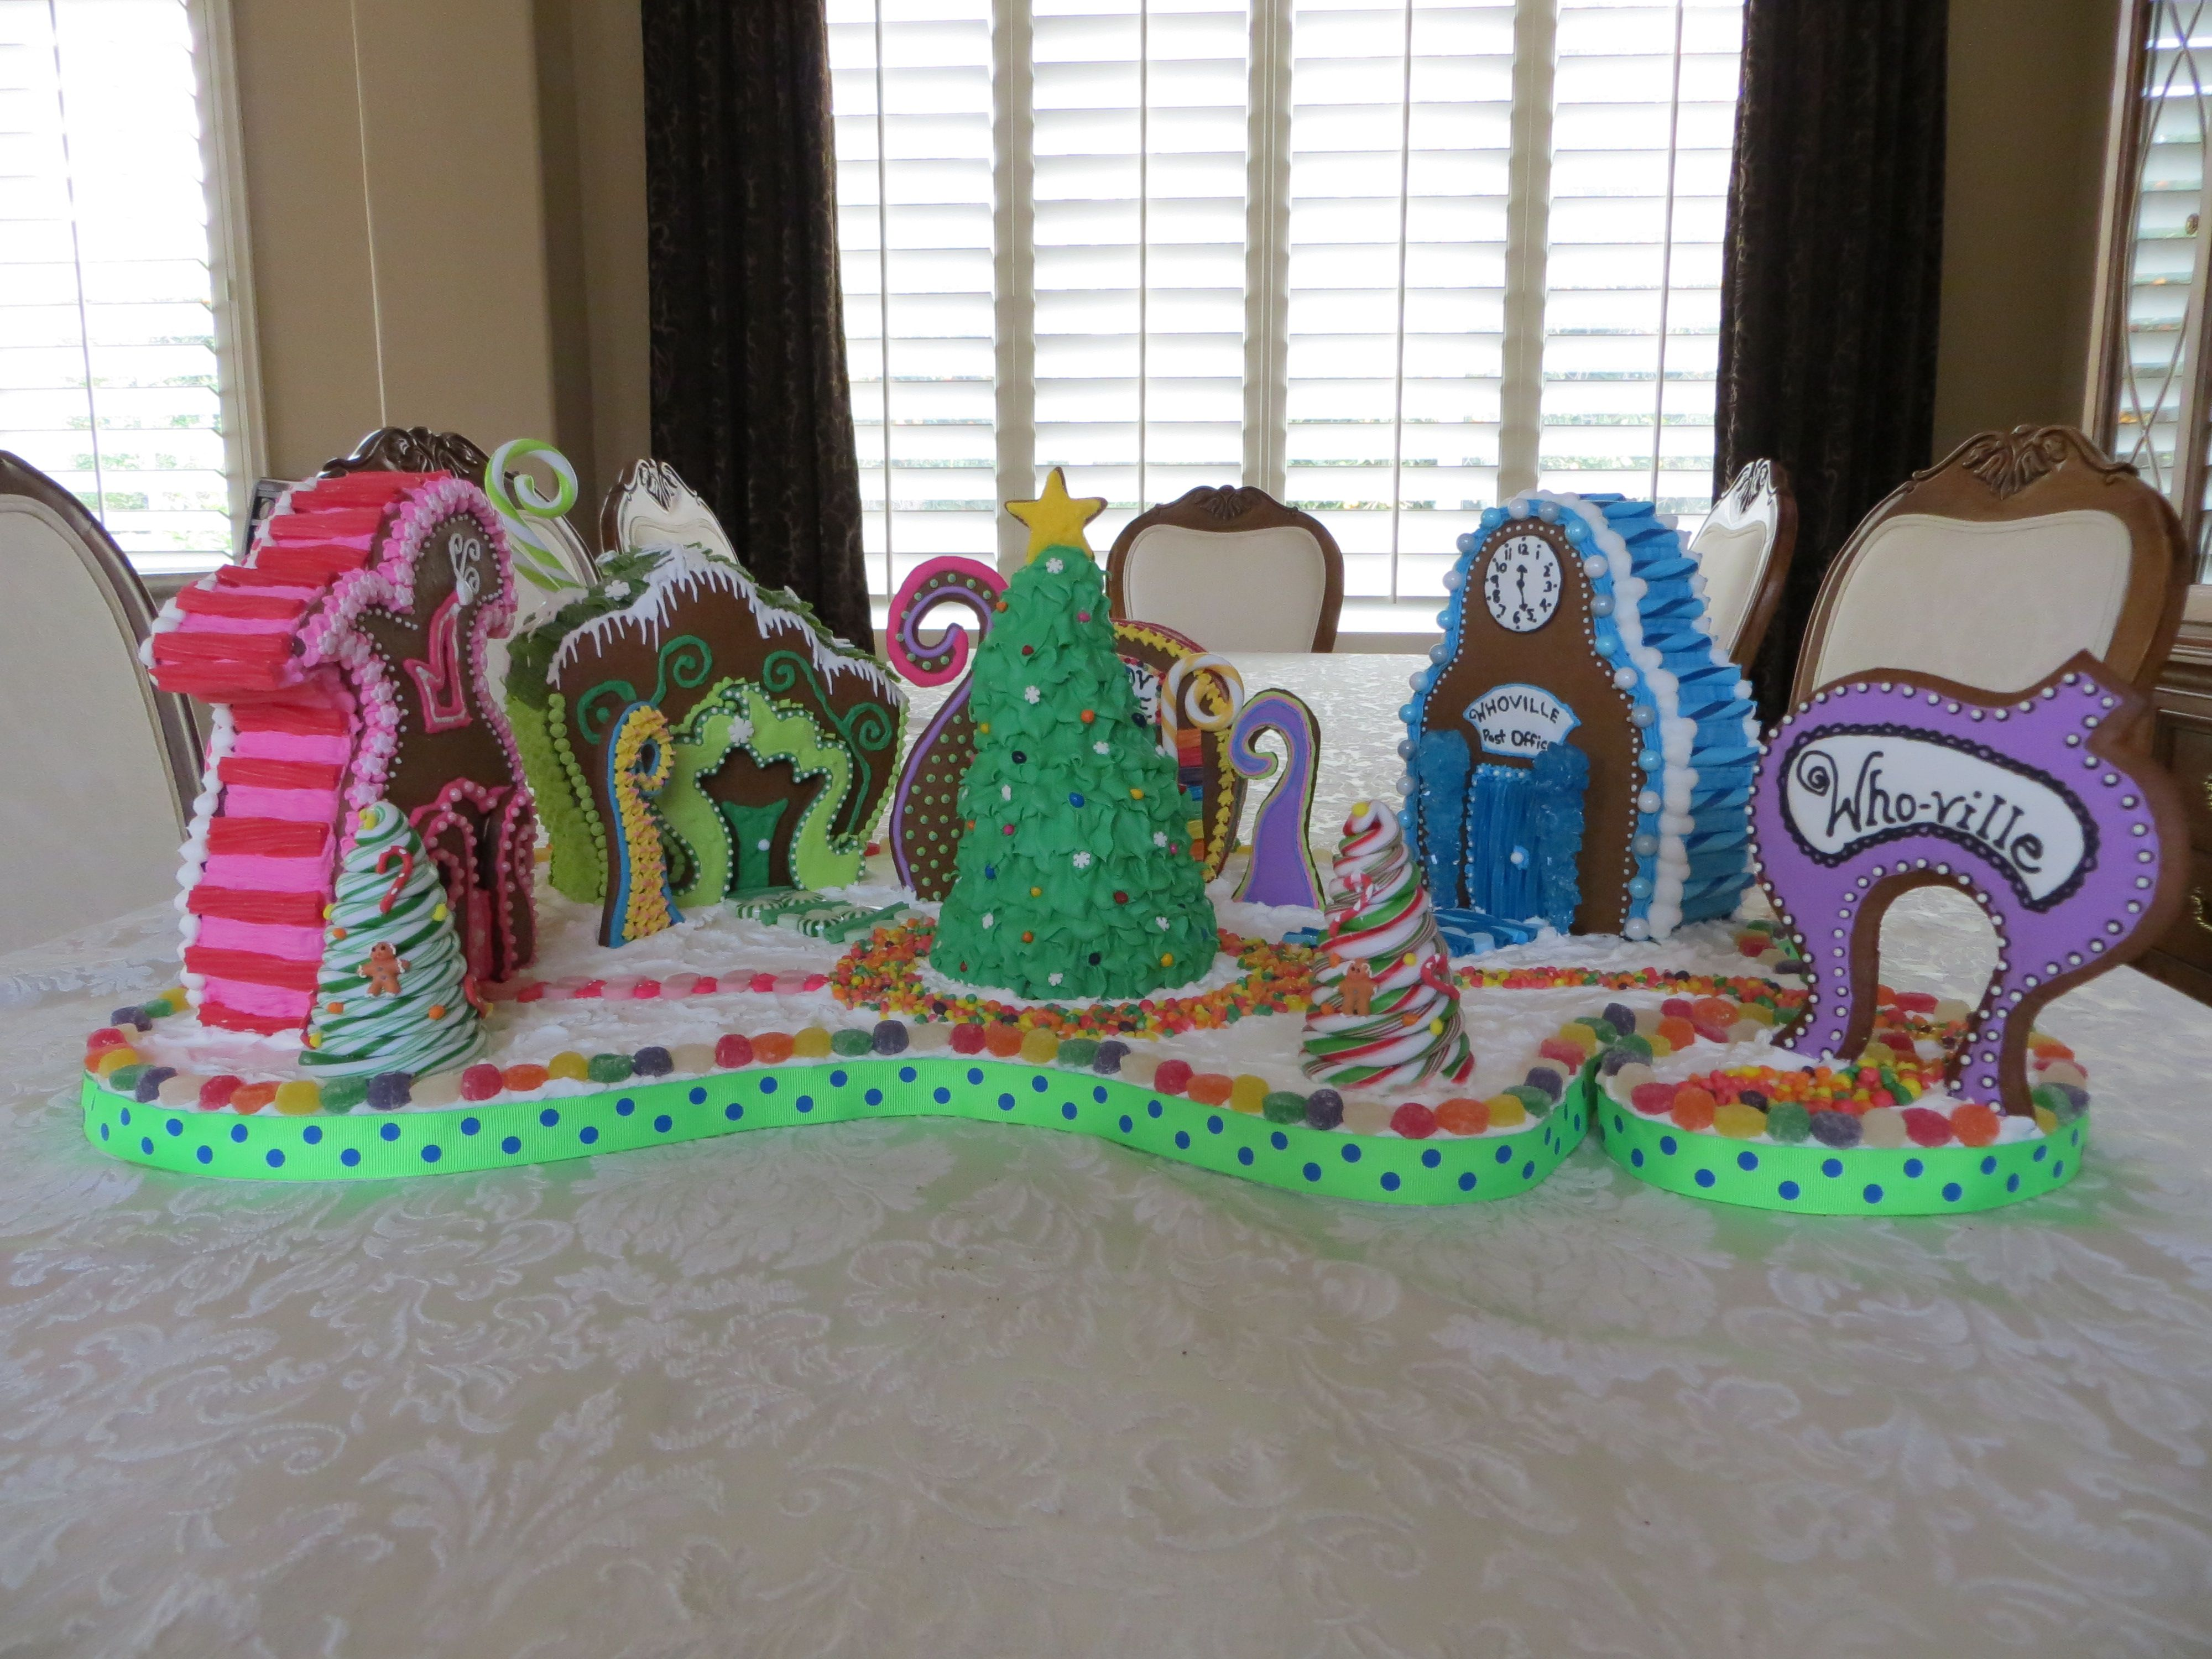 whoville gingerbread house template  Whoville Gingerbread House Village | Gingerbread house ...